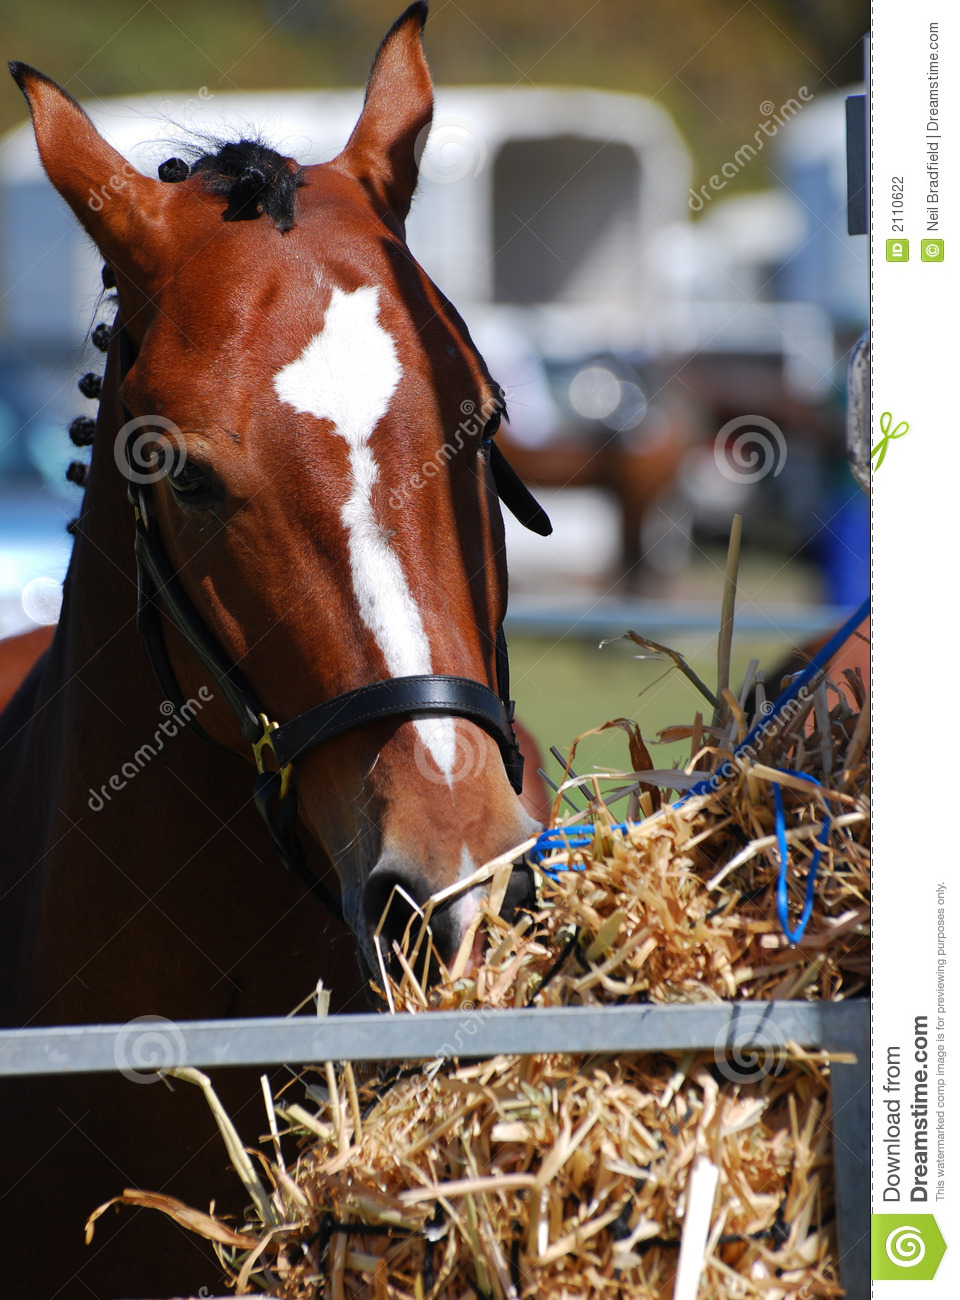 Horse Fodder Stock Photography - Image: 2110622